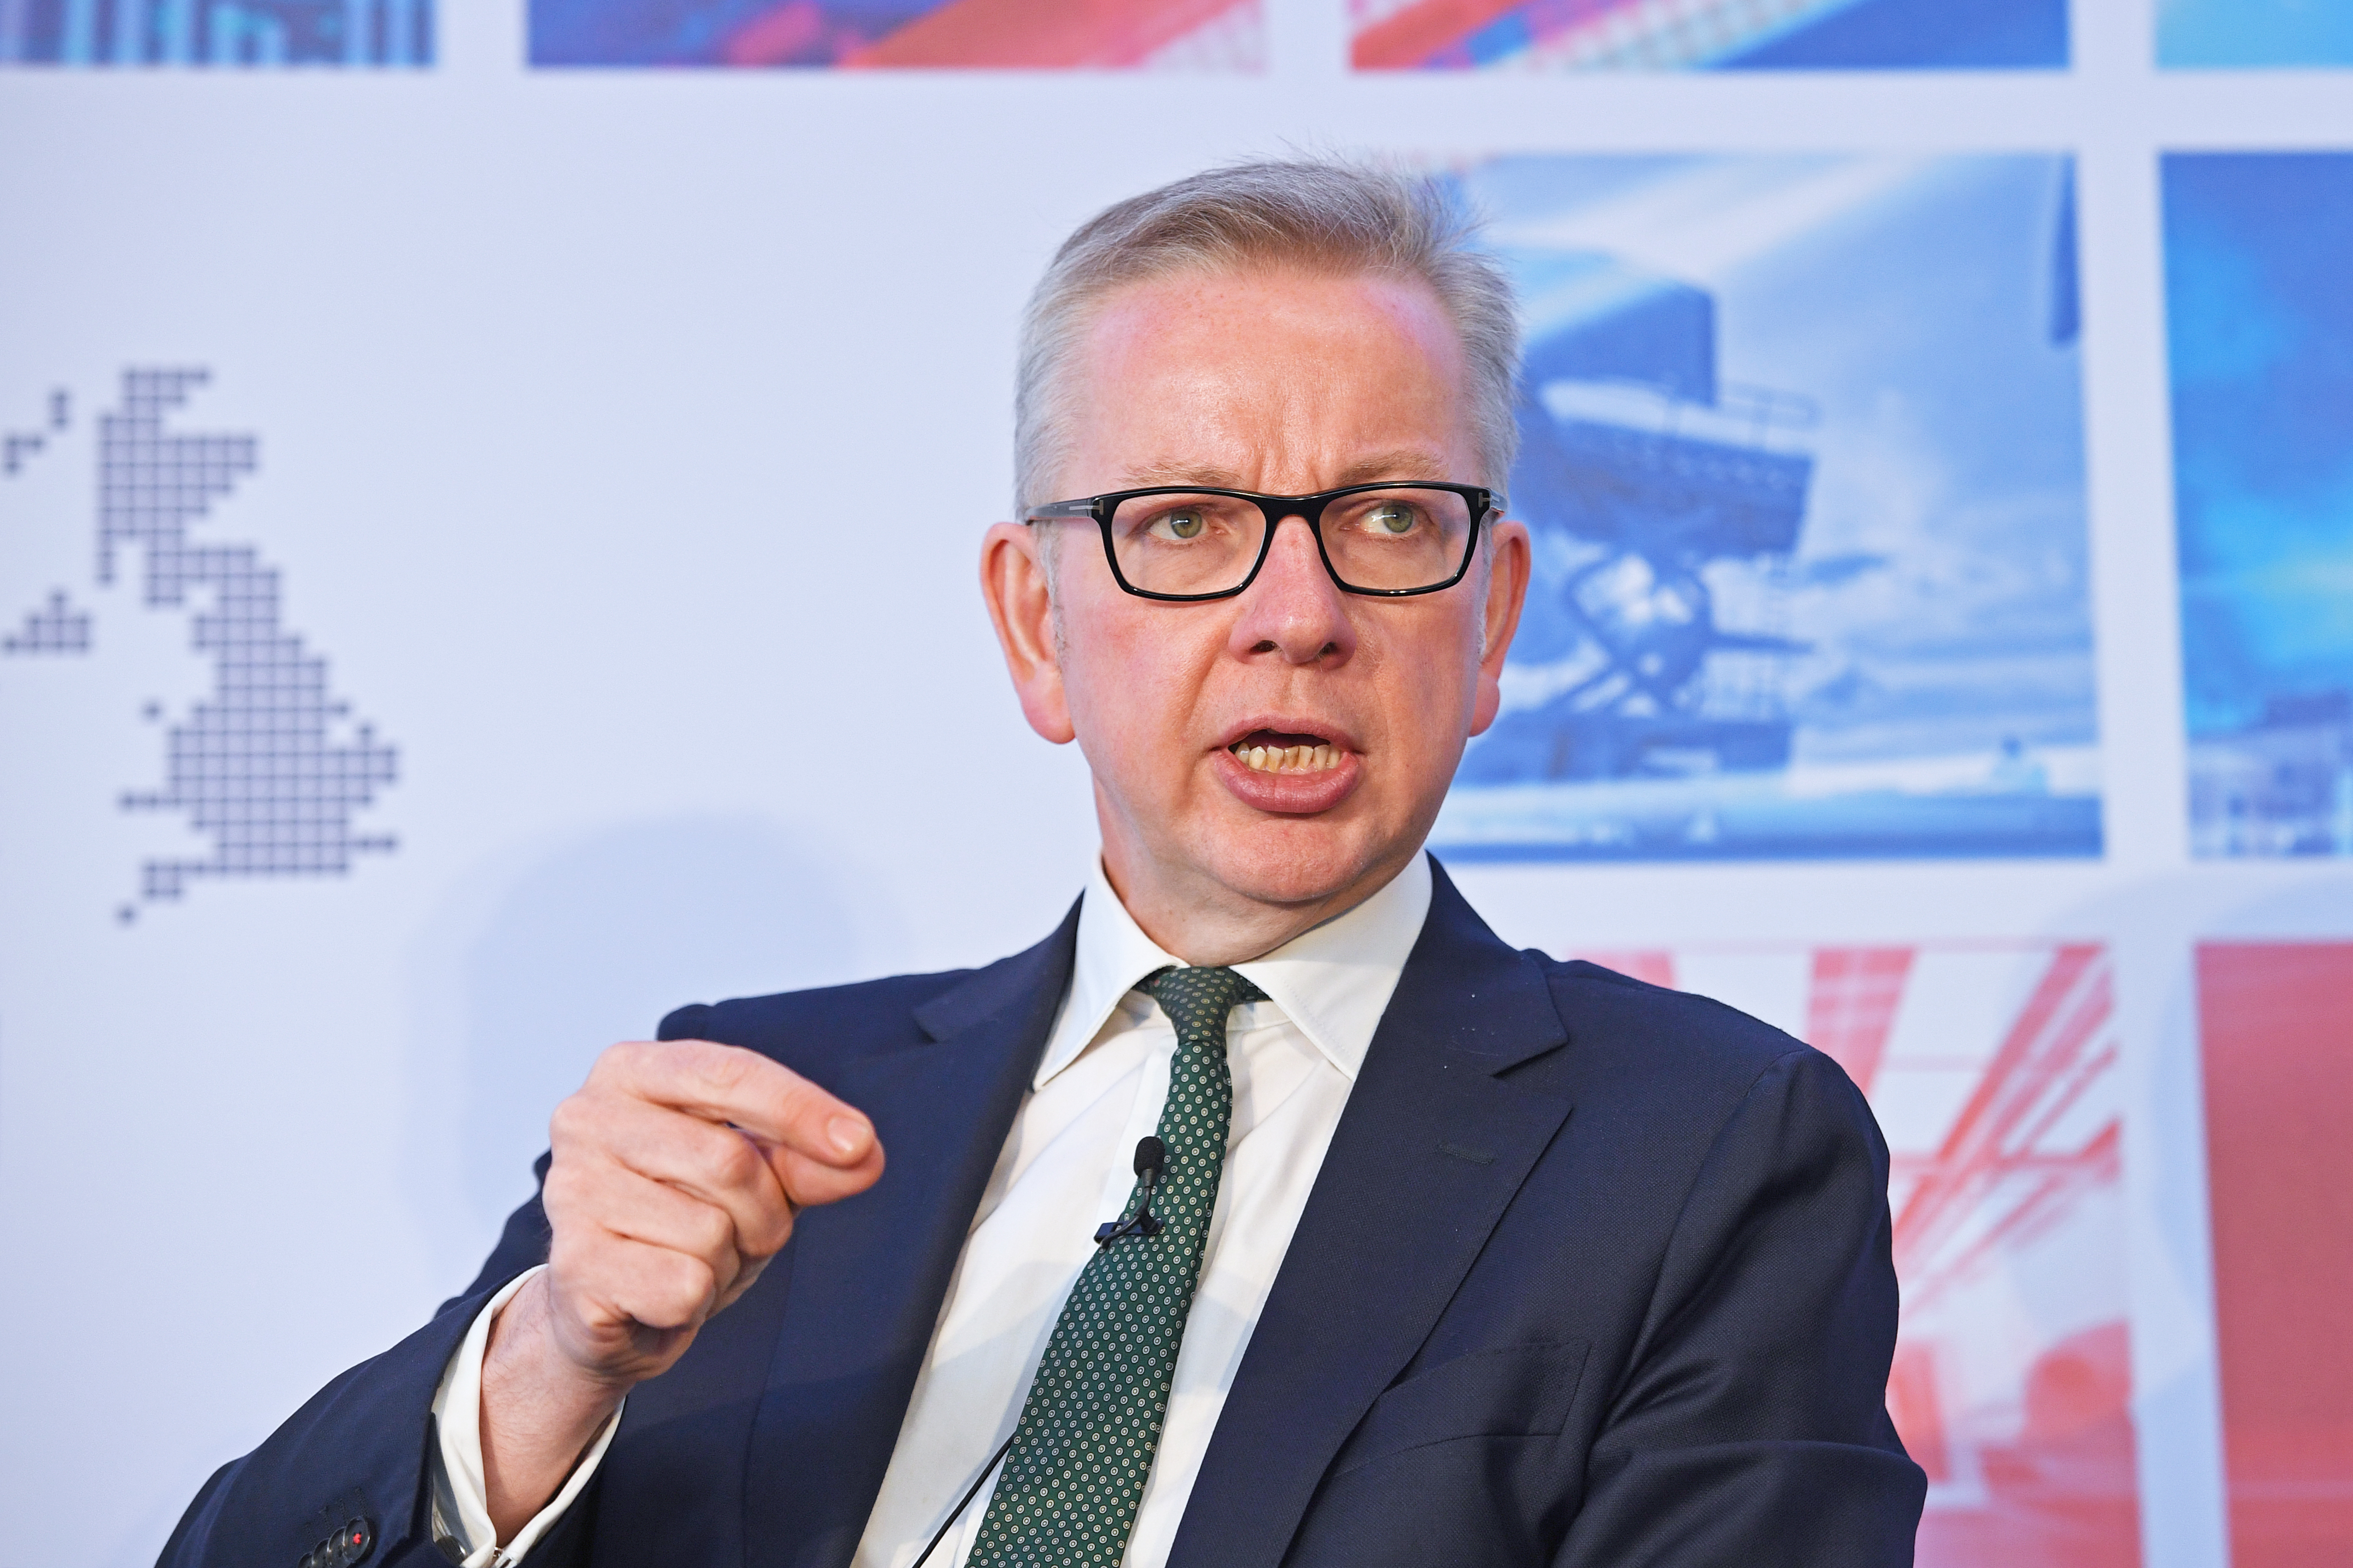 Environment Secretary Michael Gove addresses The Times CEO Summit at The News Building in London Bridge, London.